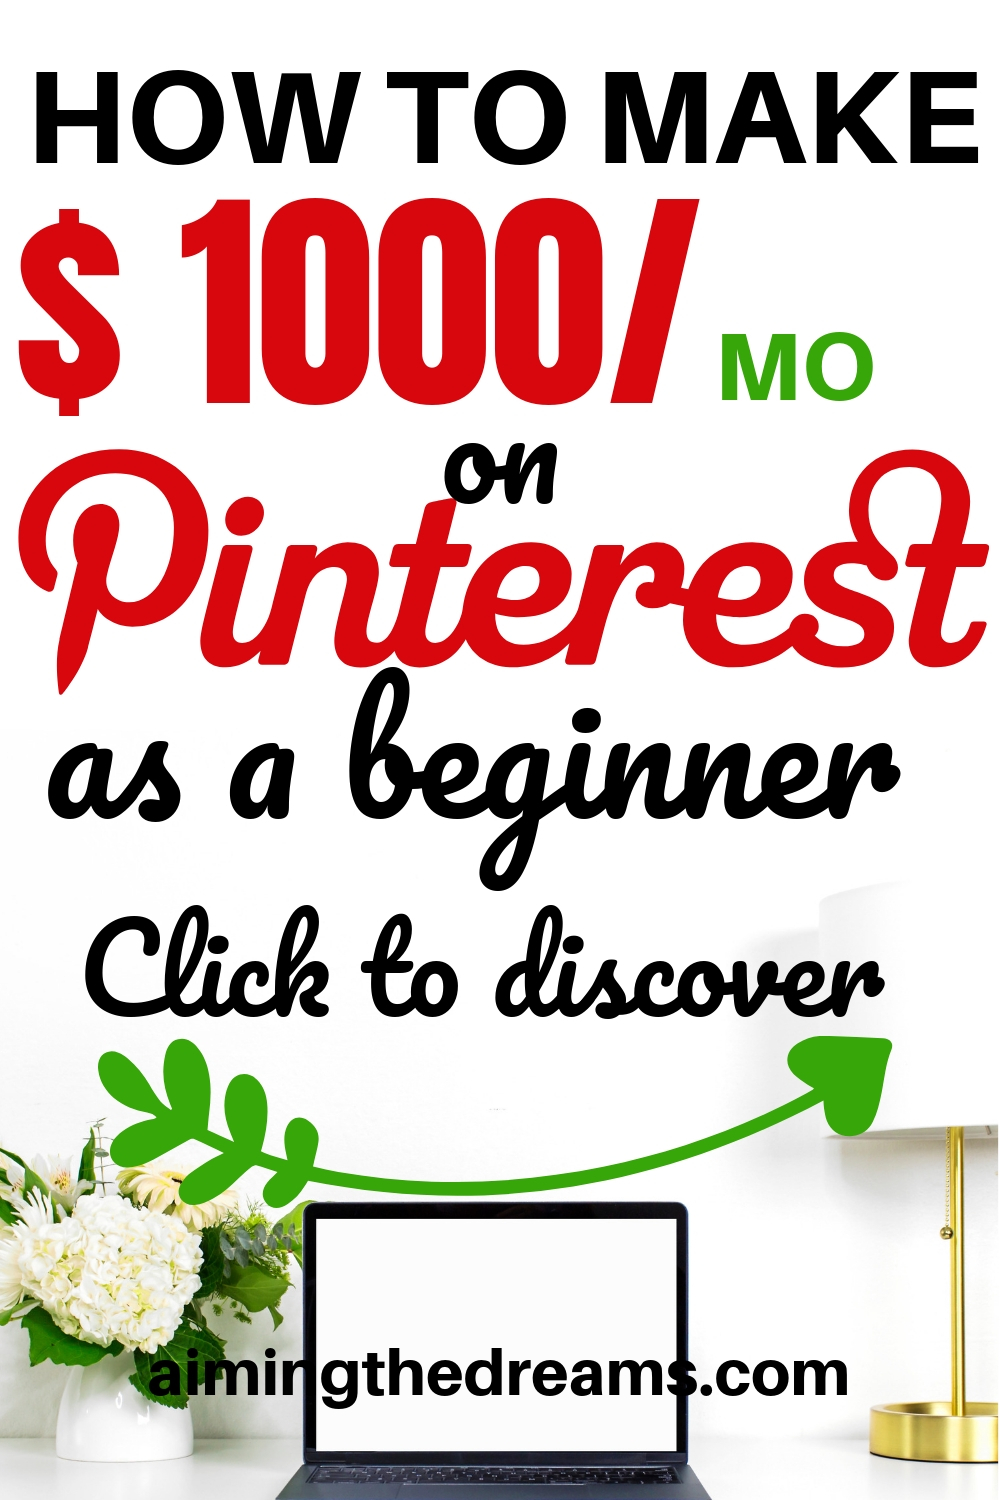 How to make money on Pinterest as a beginner. Pinterest can make money in many ways.